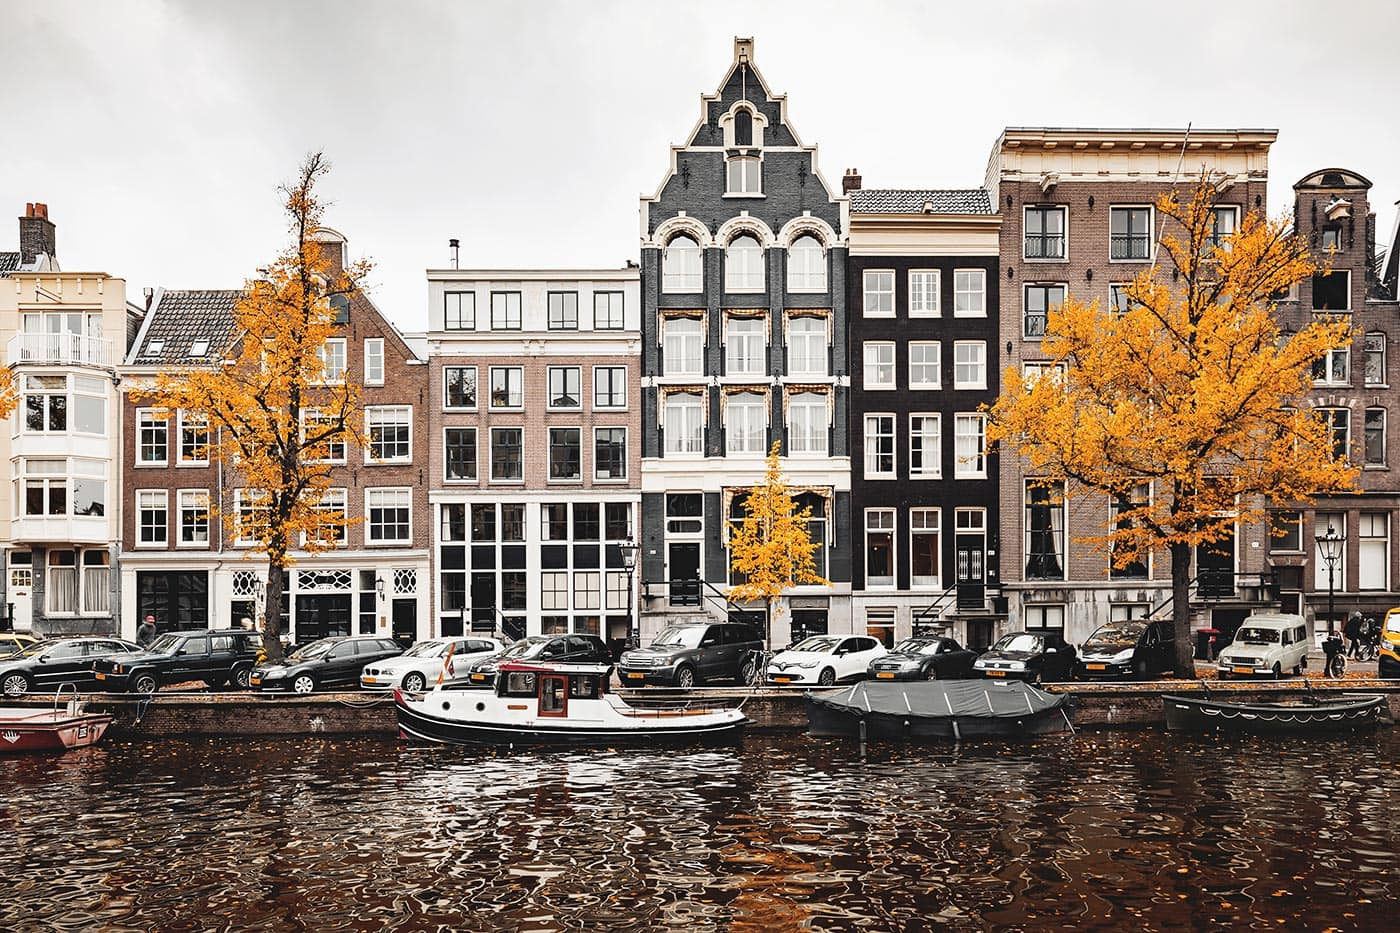 Facades in the Prinsengracht in Amsterdam, Netherlands